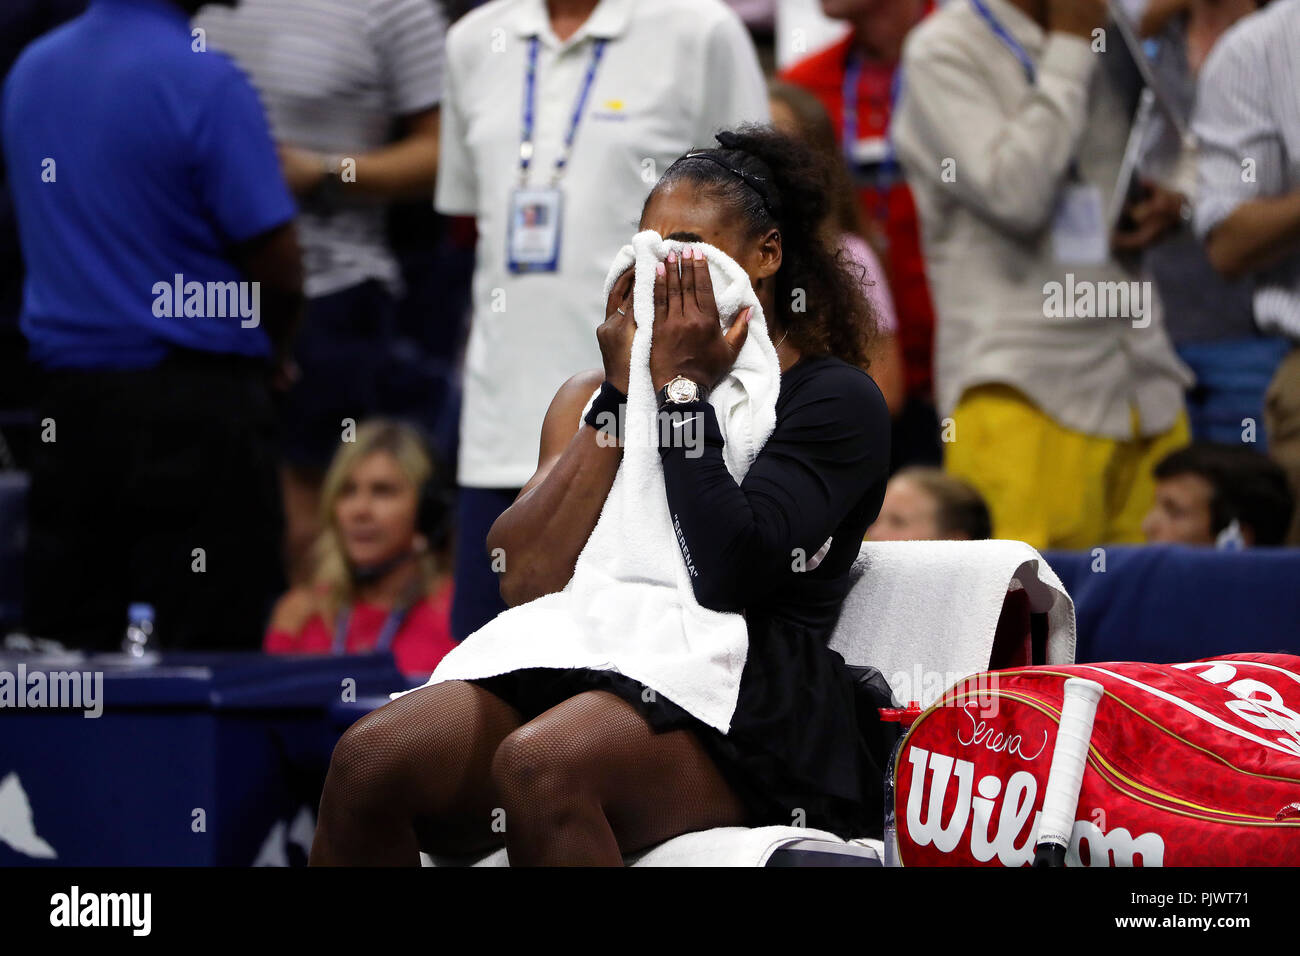 New York, USA. 8th September 2018.  US Open Tennis:   Serena Williams tries to consoles herself moments after her loss to Naomi Osaka of Japan in the US Open women's final.   Williams was penalized a game at 4-3 in the final set, which added controversy to the match. Credit: Adam Stoltman/Alamy Live News - Stock Image